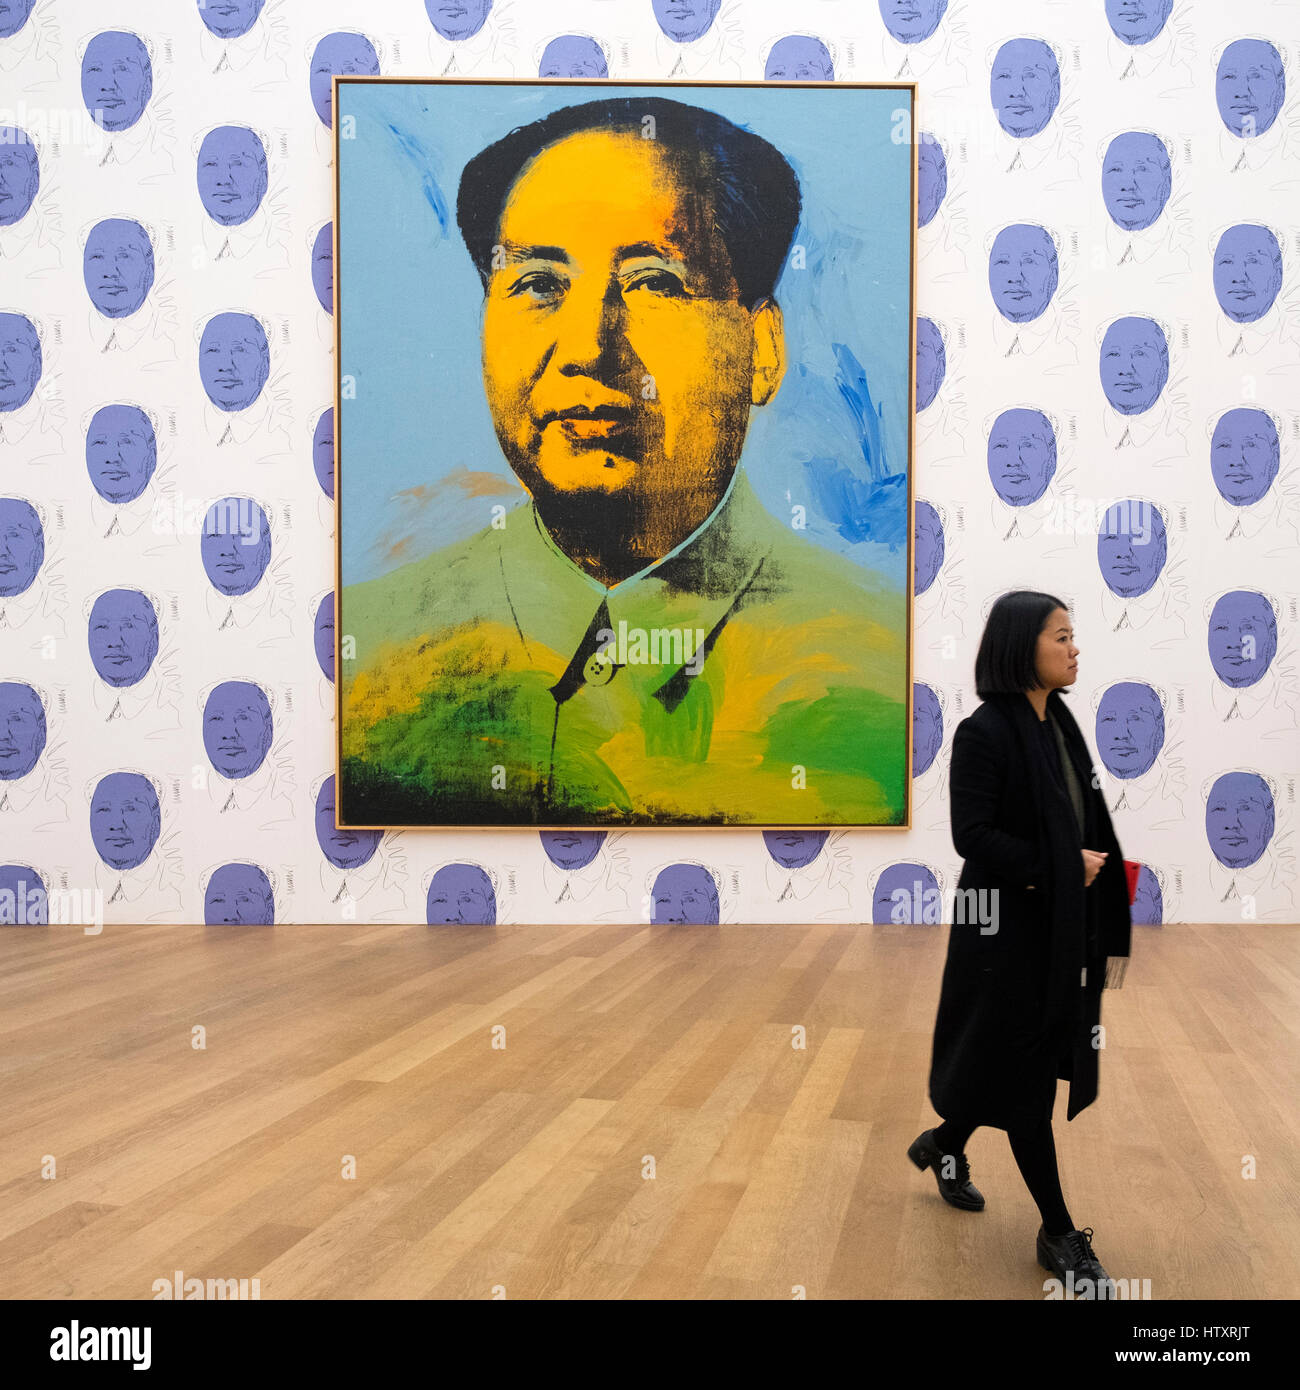 New york usa 11th nov 2015 telephone bidders stand in front of the - Mao By Andy Warhol At Hamburger Bahnhof Modern Art Museum In Berlin Germany Stock